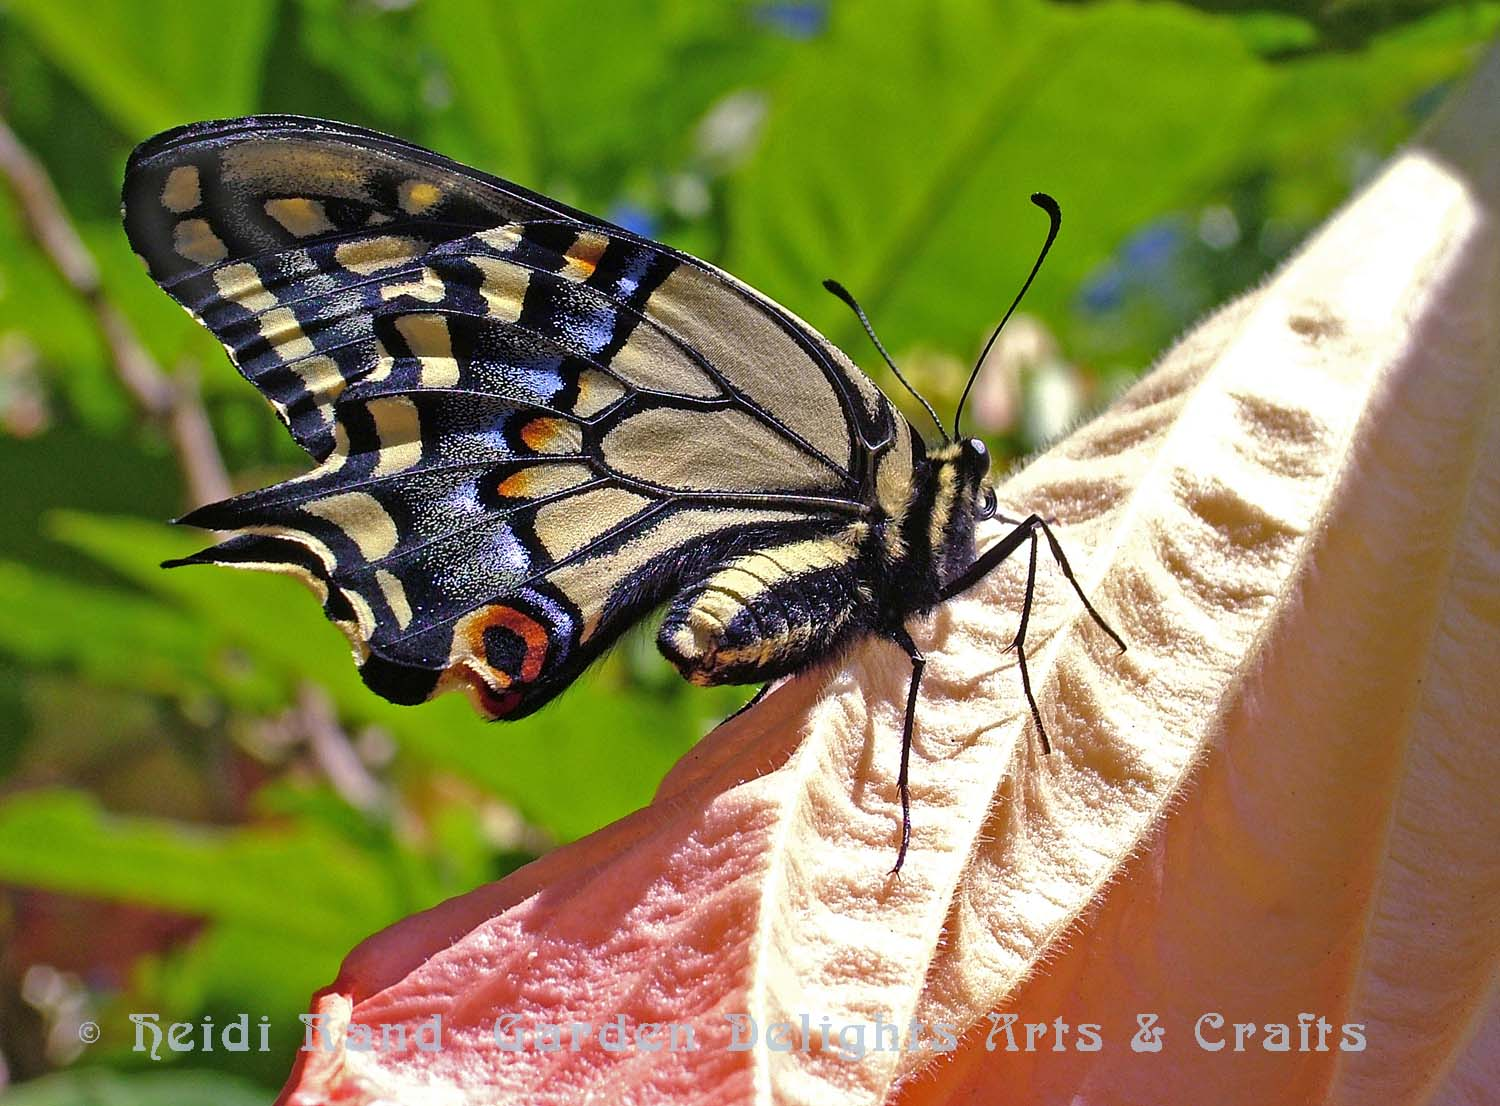 Swallowtail butterfly on angel's trumpet flower